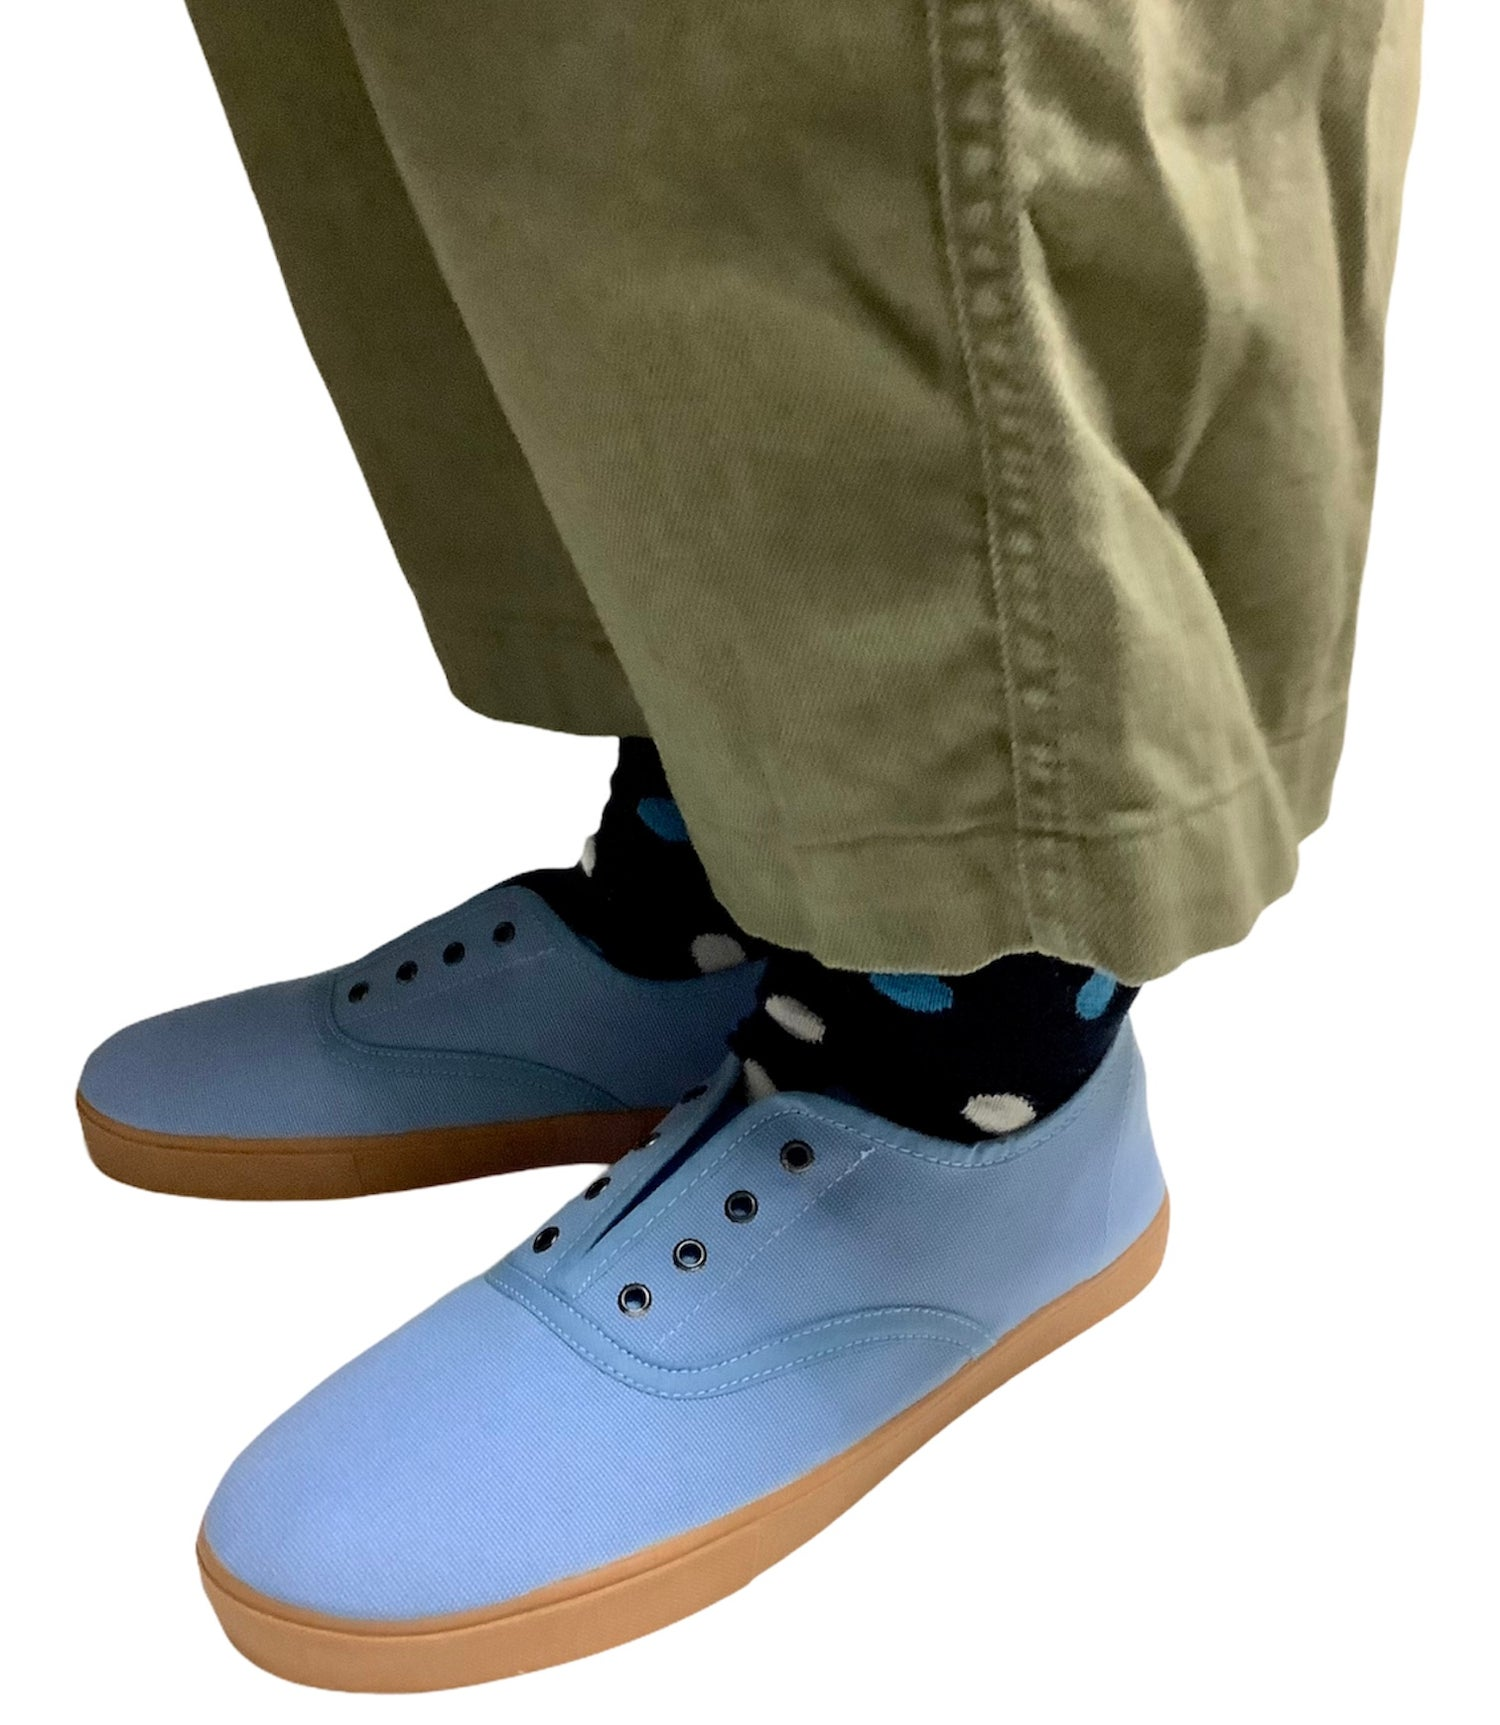 Image of Tortola plimsoll blue canvas sneaker made in Spain